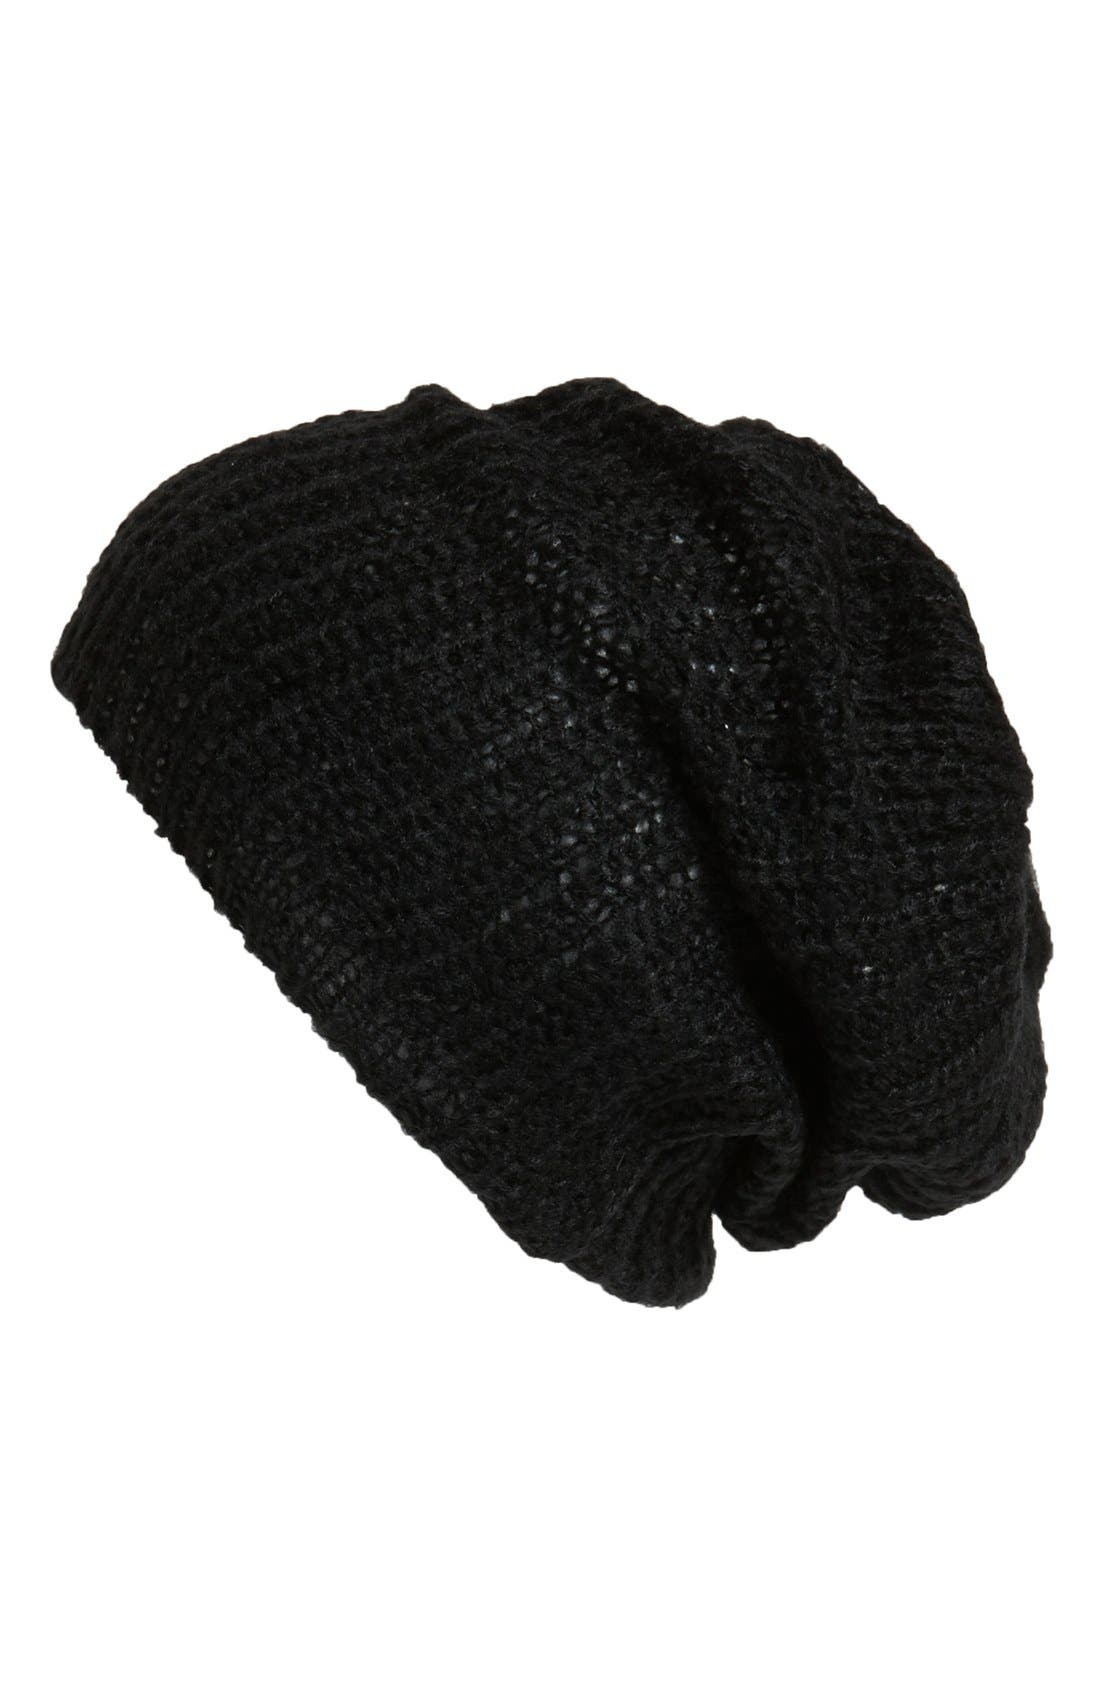 Alternate Image 1 Selected - BP. Knit Slouchy Beanie